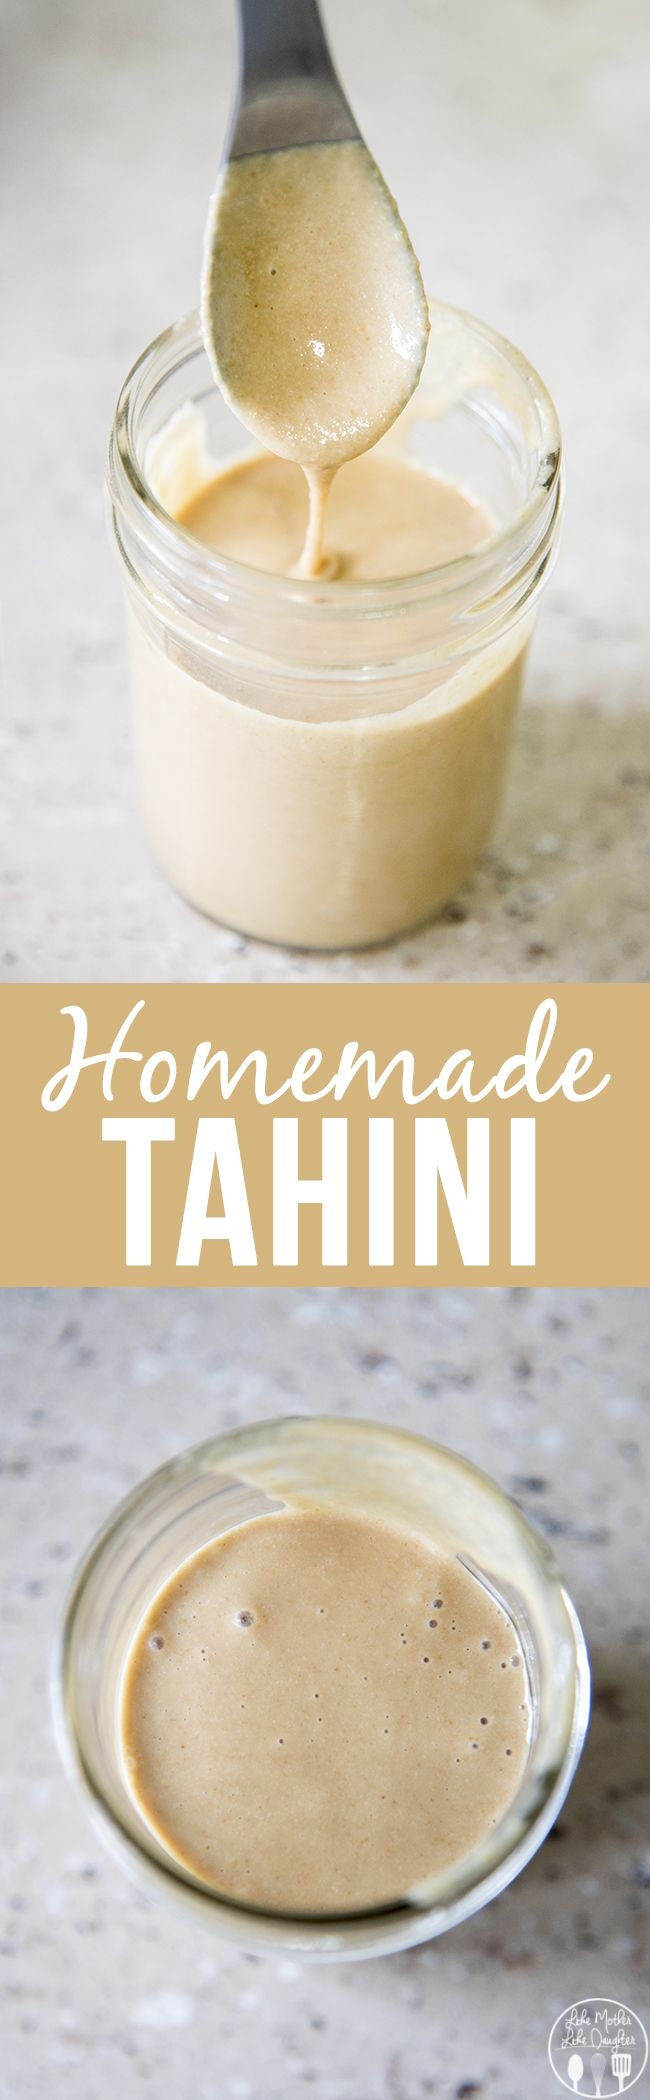 Homemade Tahini - Only 2 ingredients and takes about 8 minutes to make and its perfect for use in any recipes, especially homemade hummus!